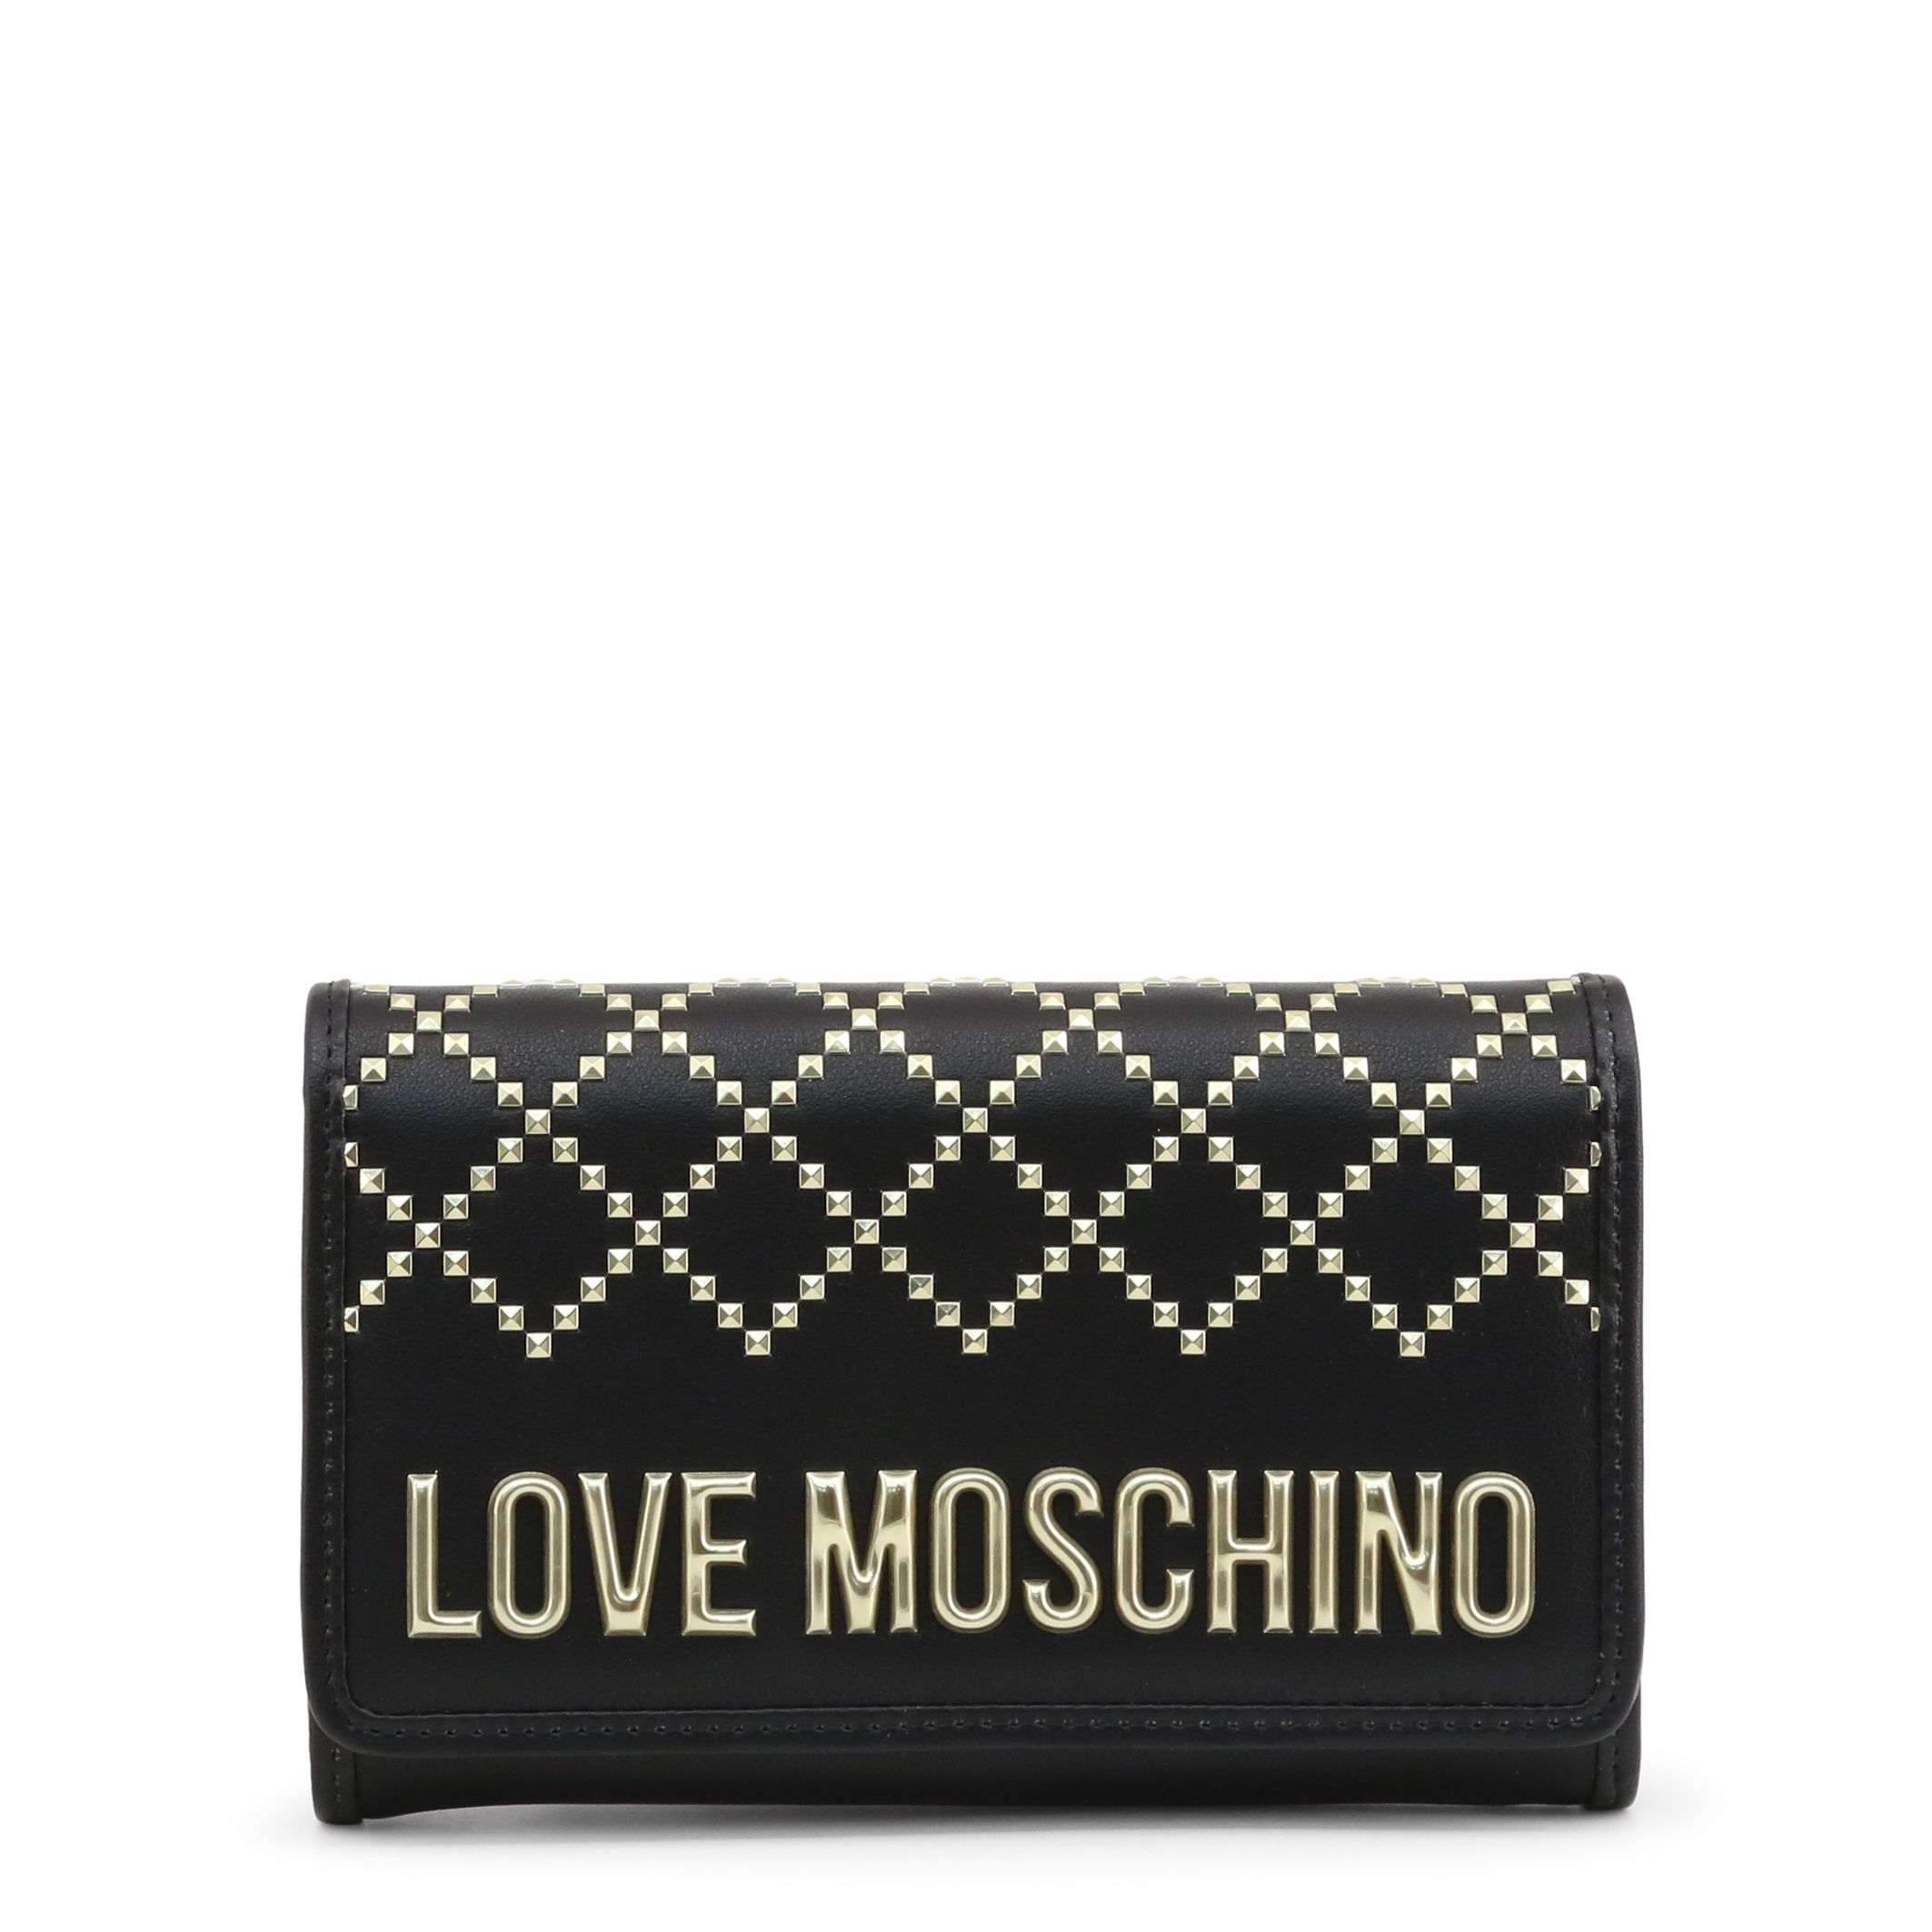 Portefeuilles Love Moschino – JC5621PP1BLG